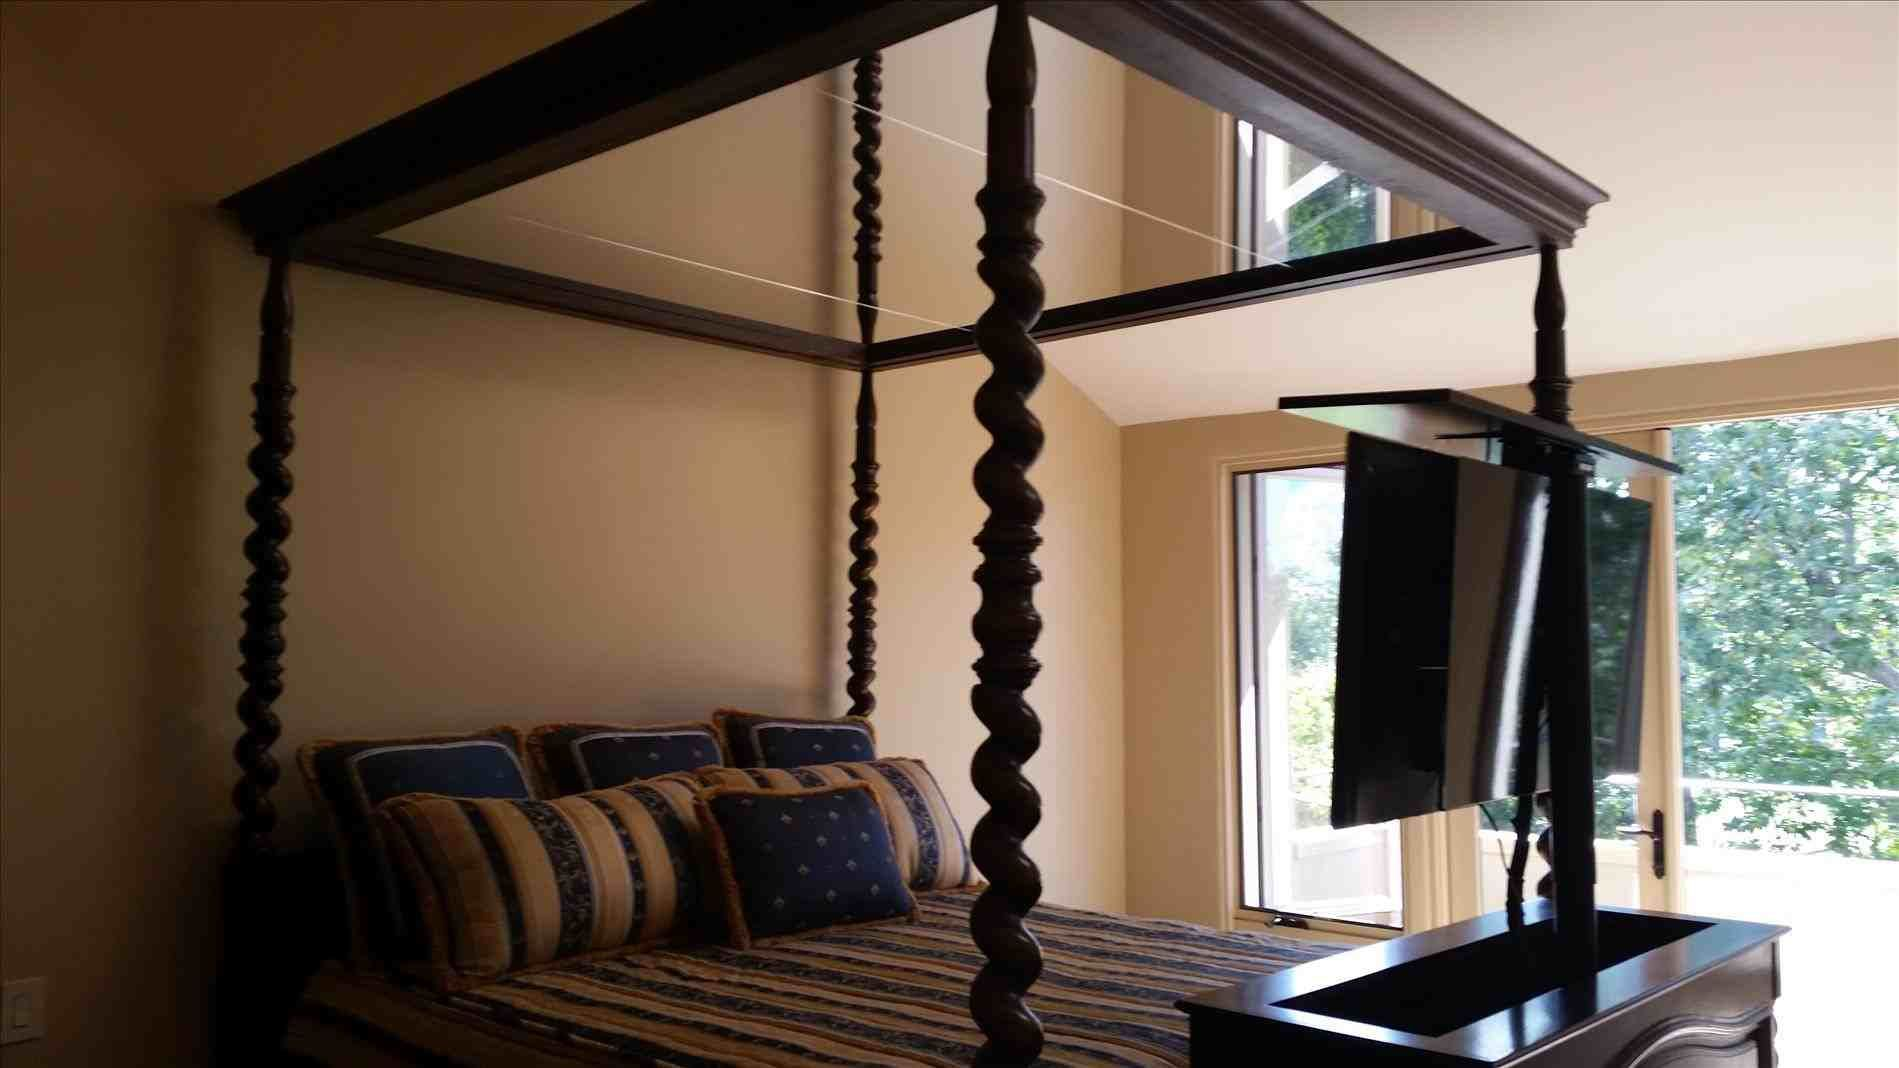 - Image Result For Canopy Bed With Mirrored Ceiling Mirror Ceiling